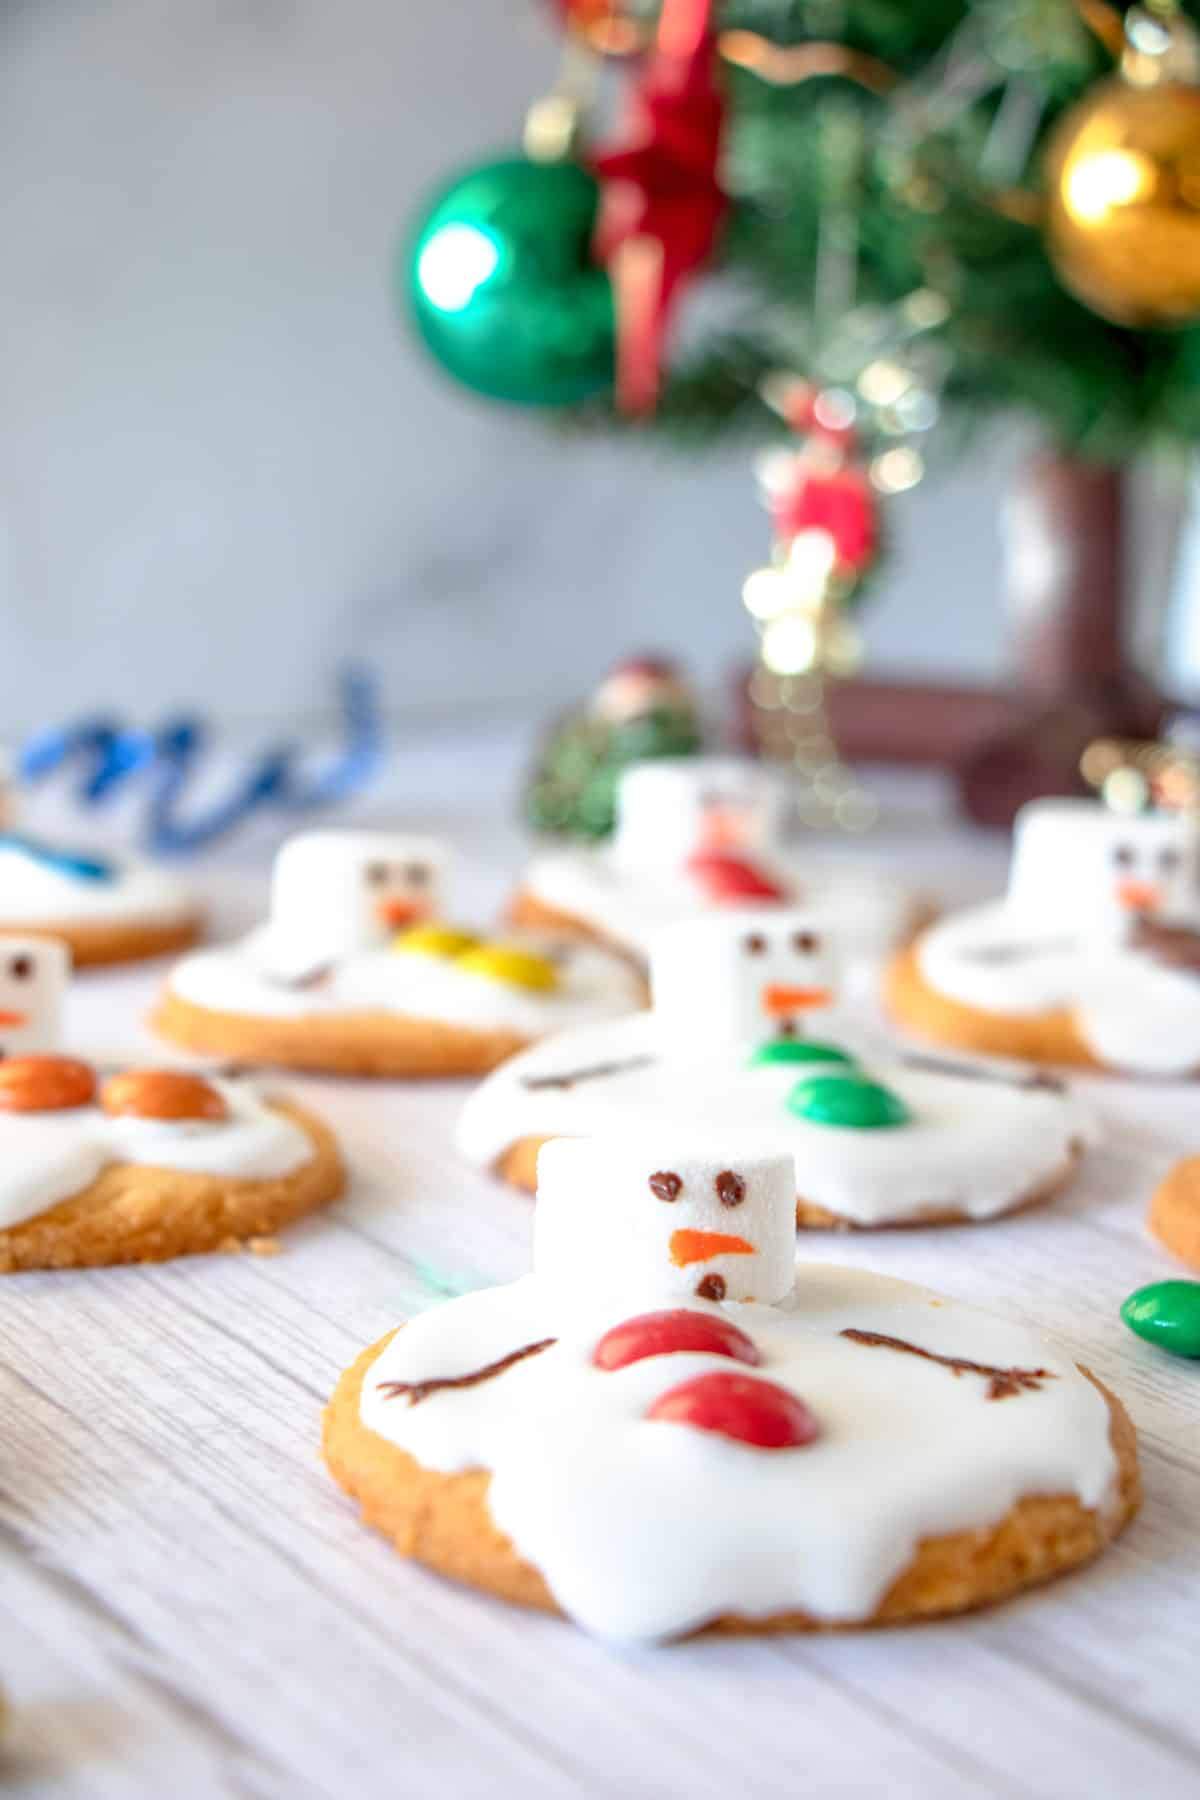 Christmas melted snowman cookies next to a tree with ornaments and Christmas decor